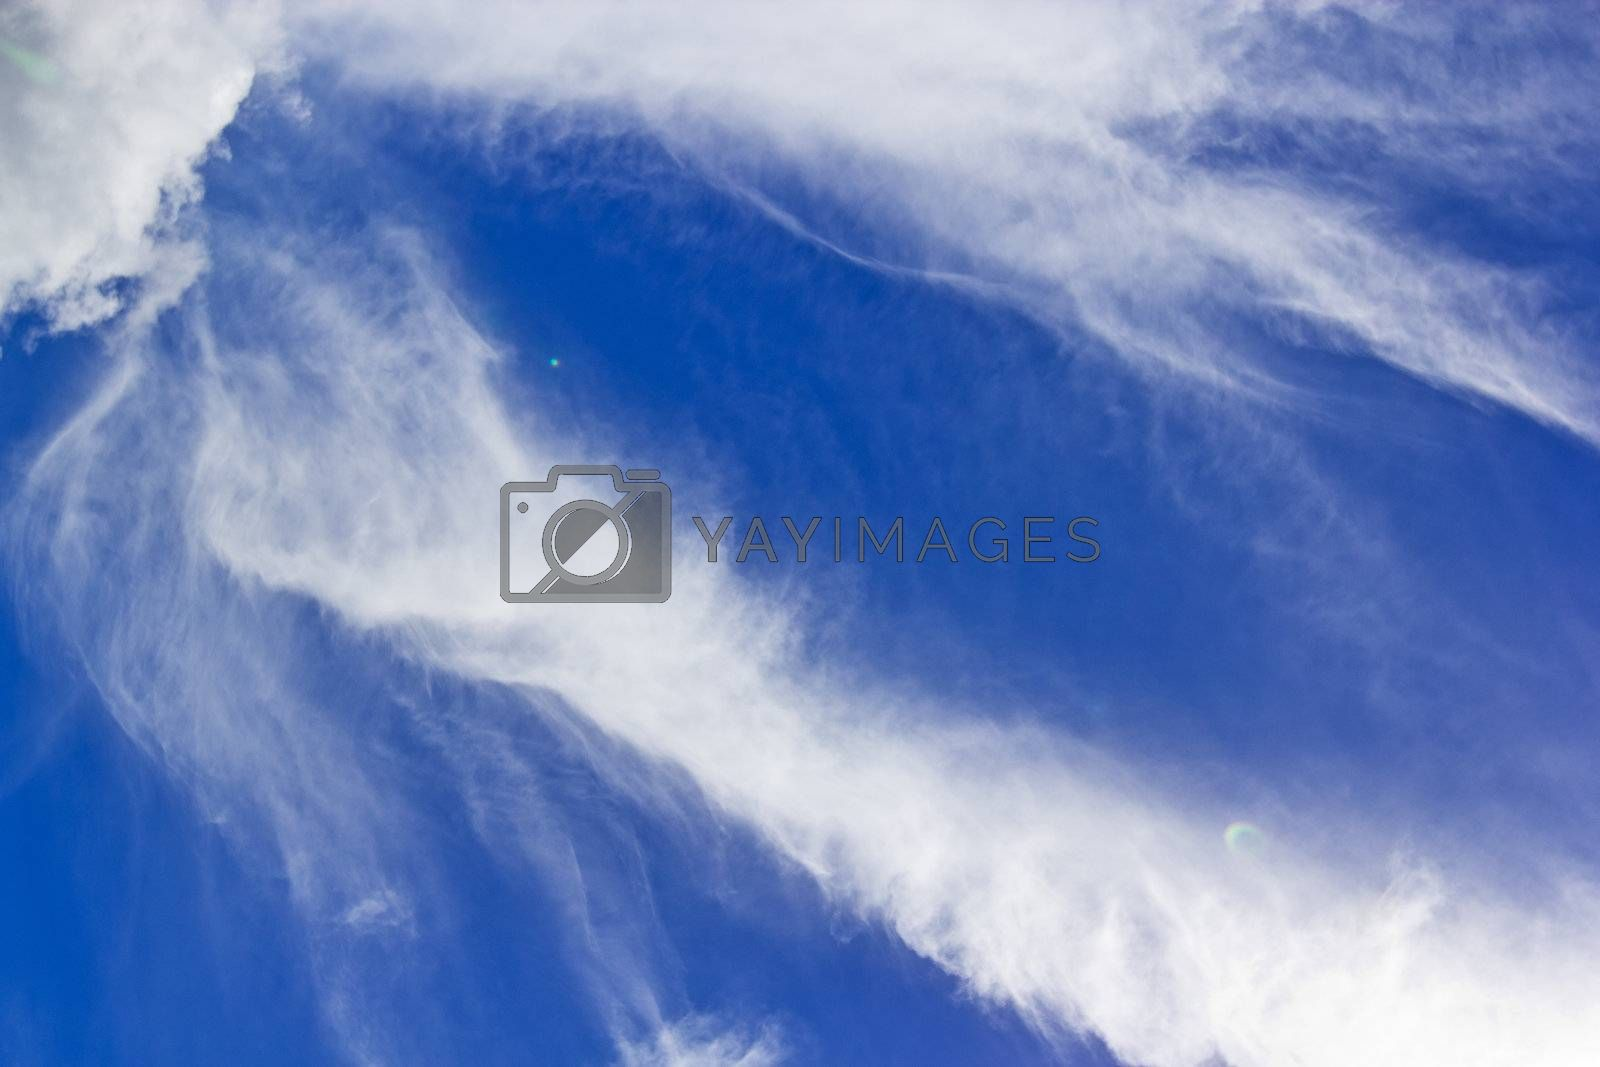 On the day when the sun is scorching hot and turbulence cloud